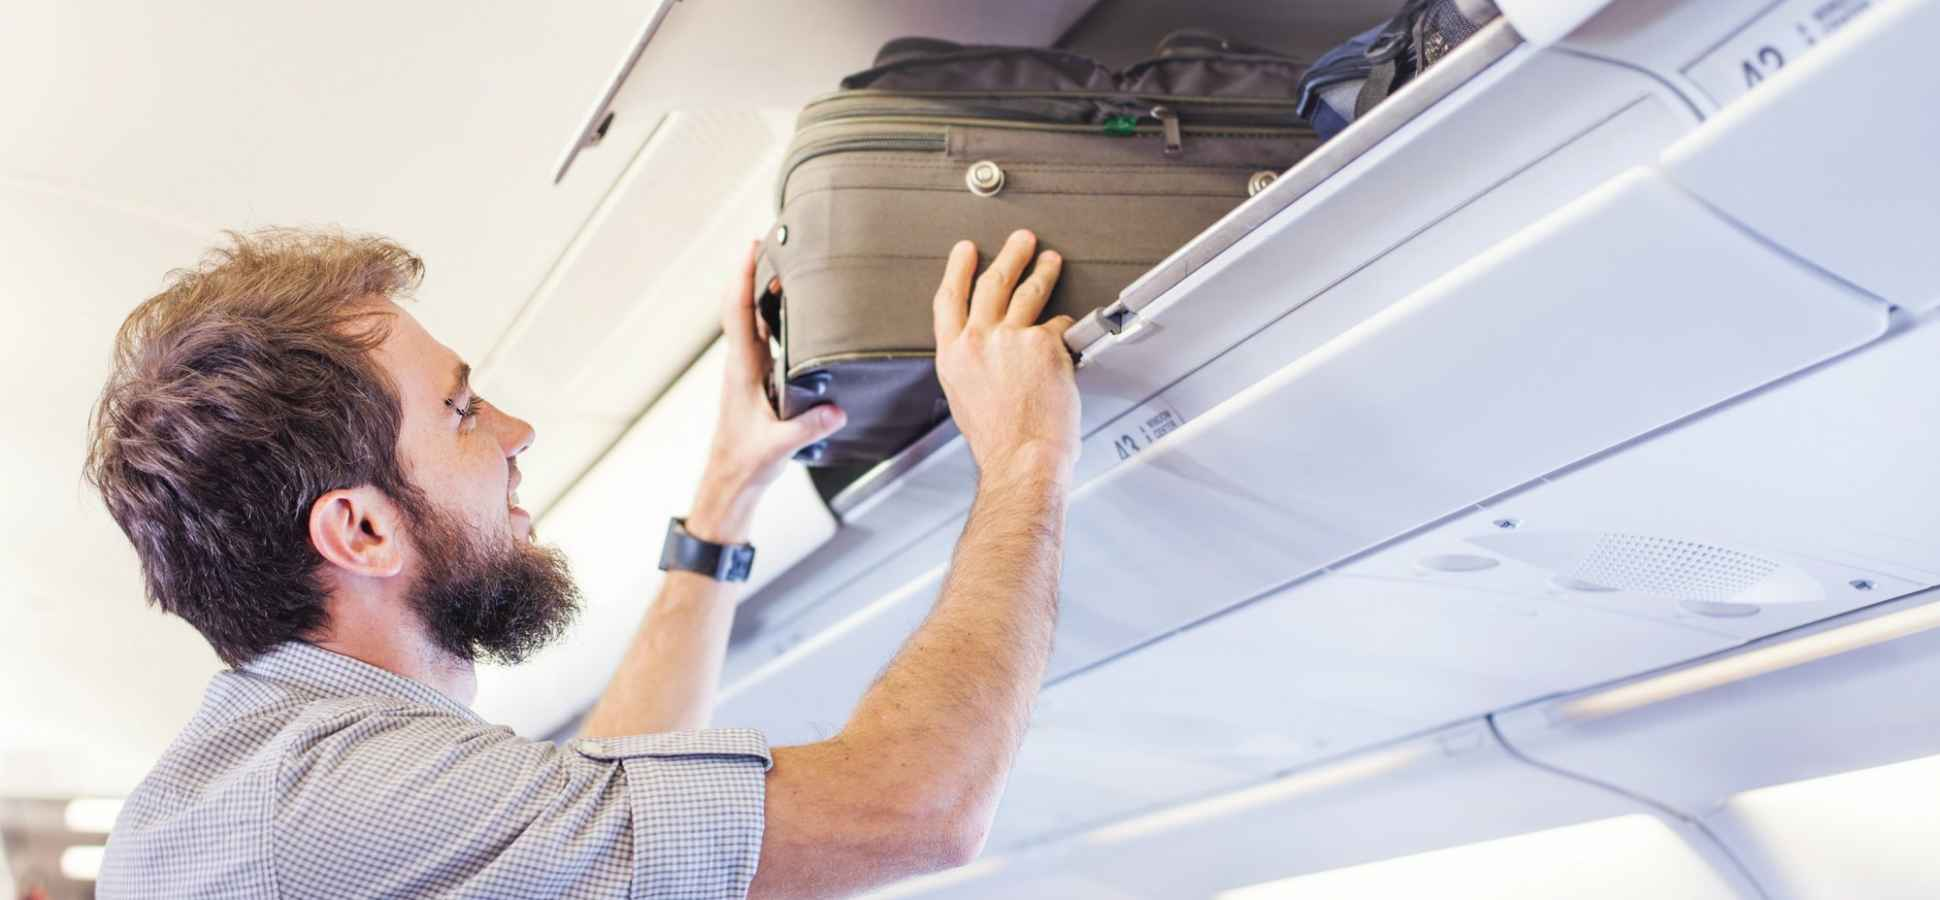 This 1 Tip Can Keep You From Ever Checking a Bag at an Airport Gate Again